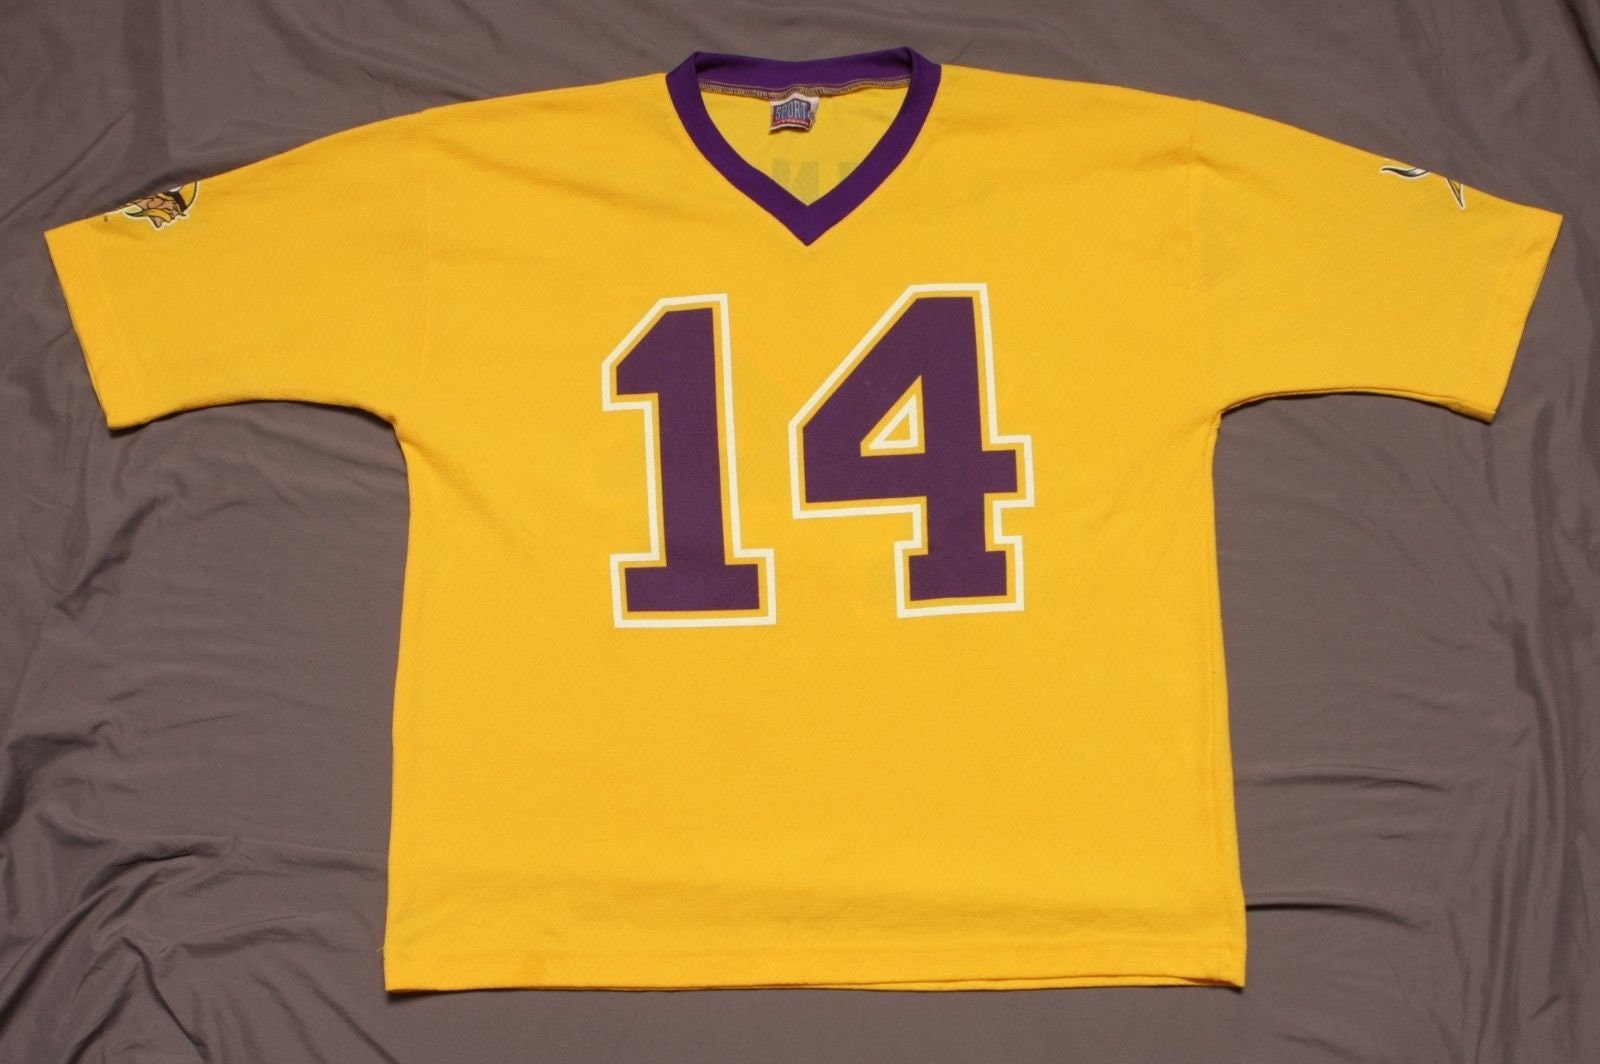 low priced b503f 4ebea Vintage 90's Minnesota Vikings Jersey Brad Johnson #14 NFL Football 90s  1998 Sport